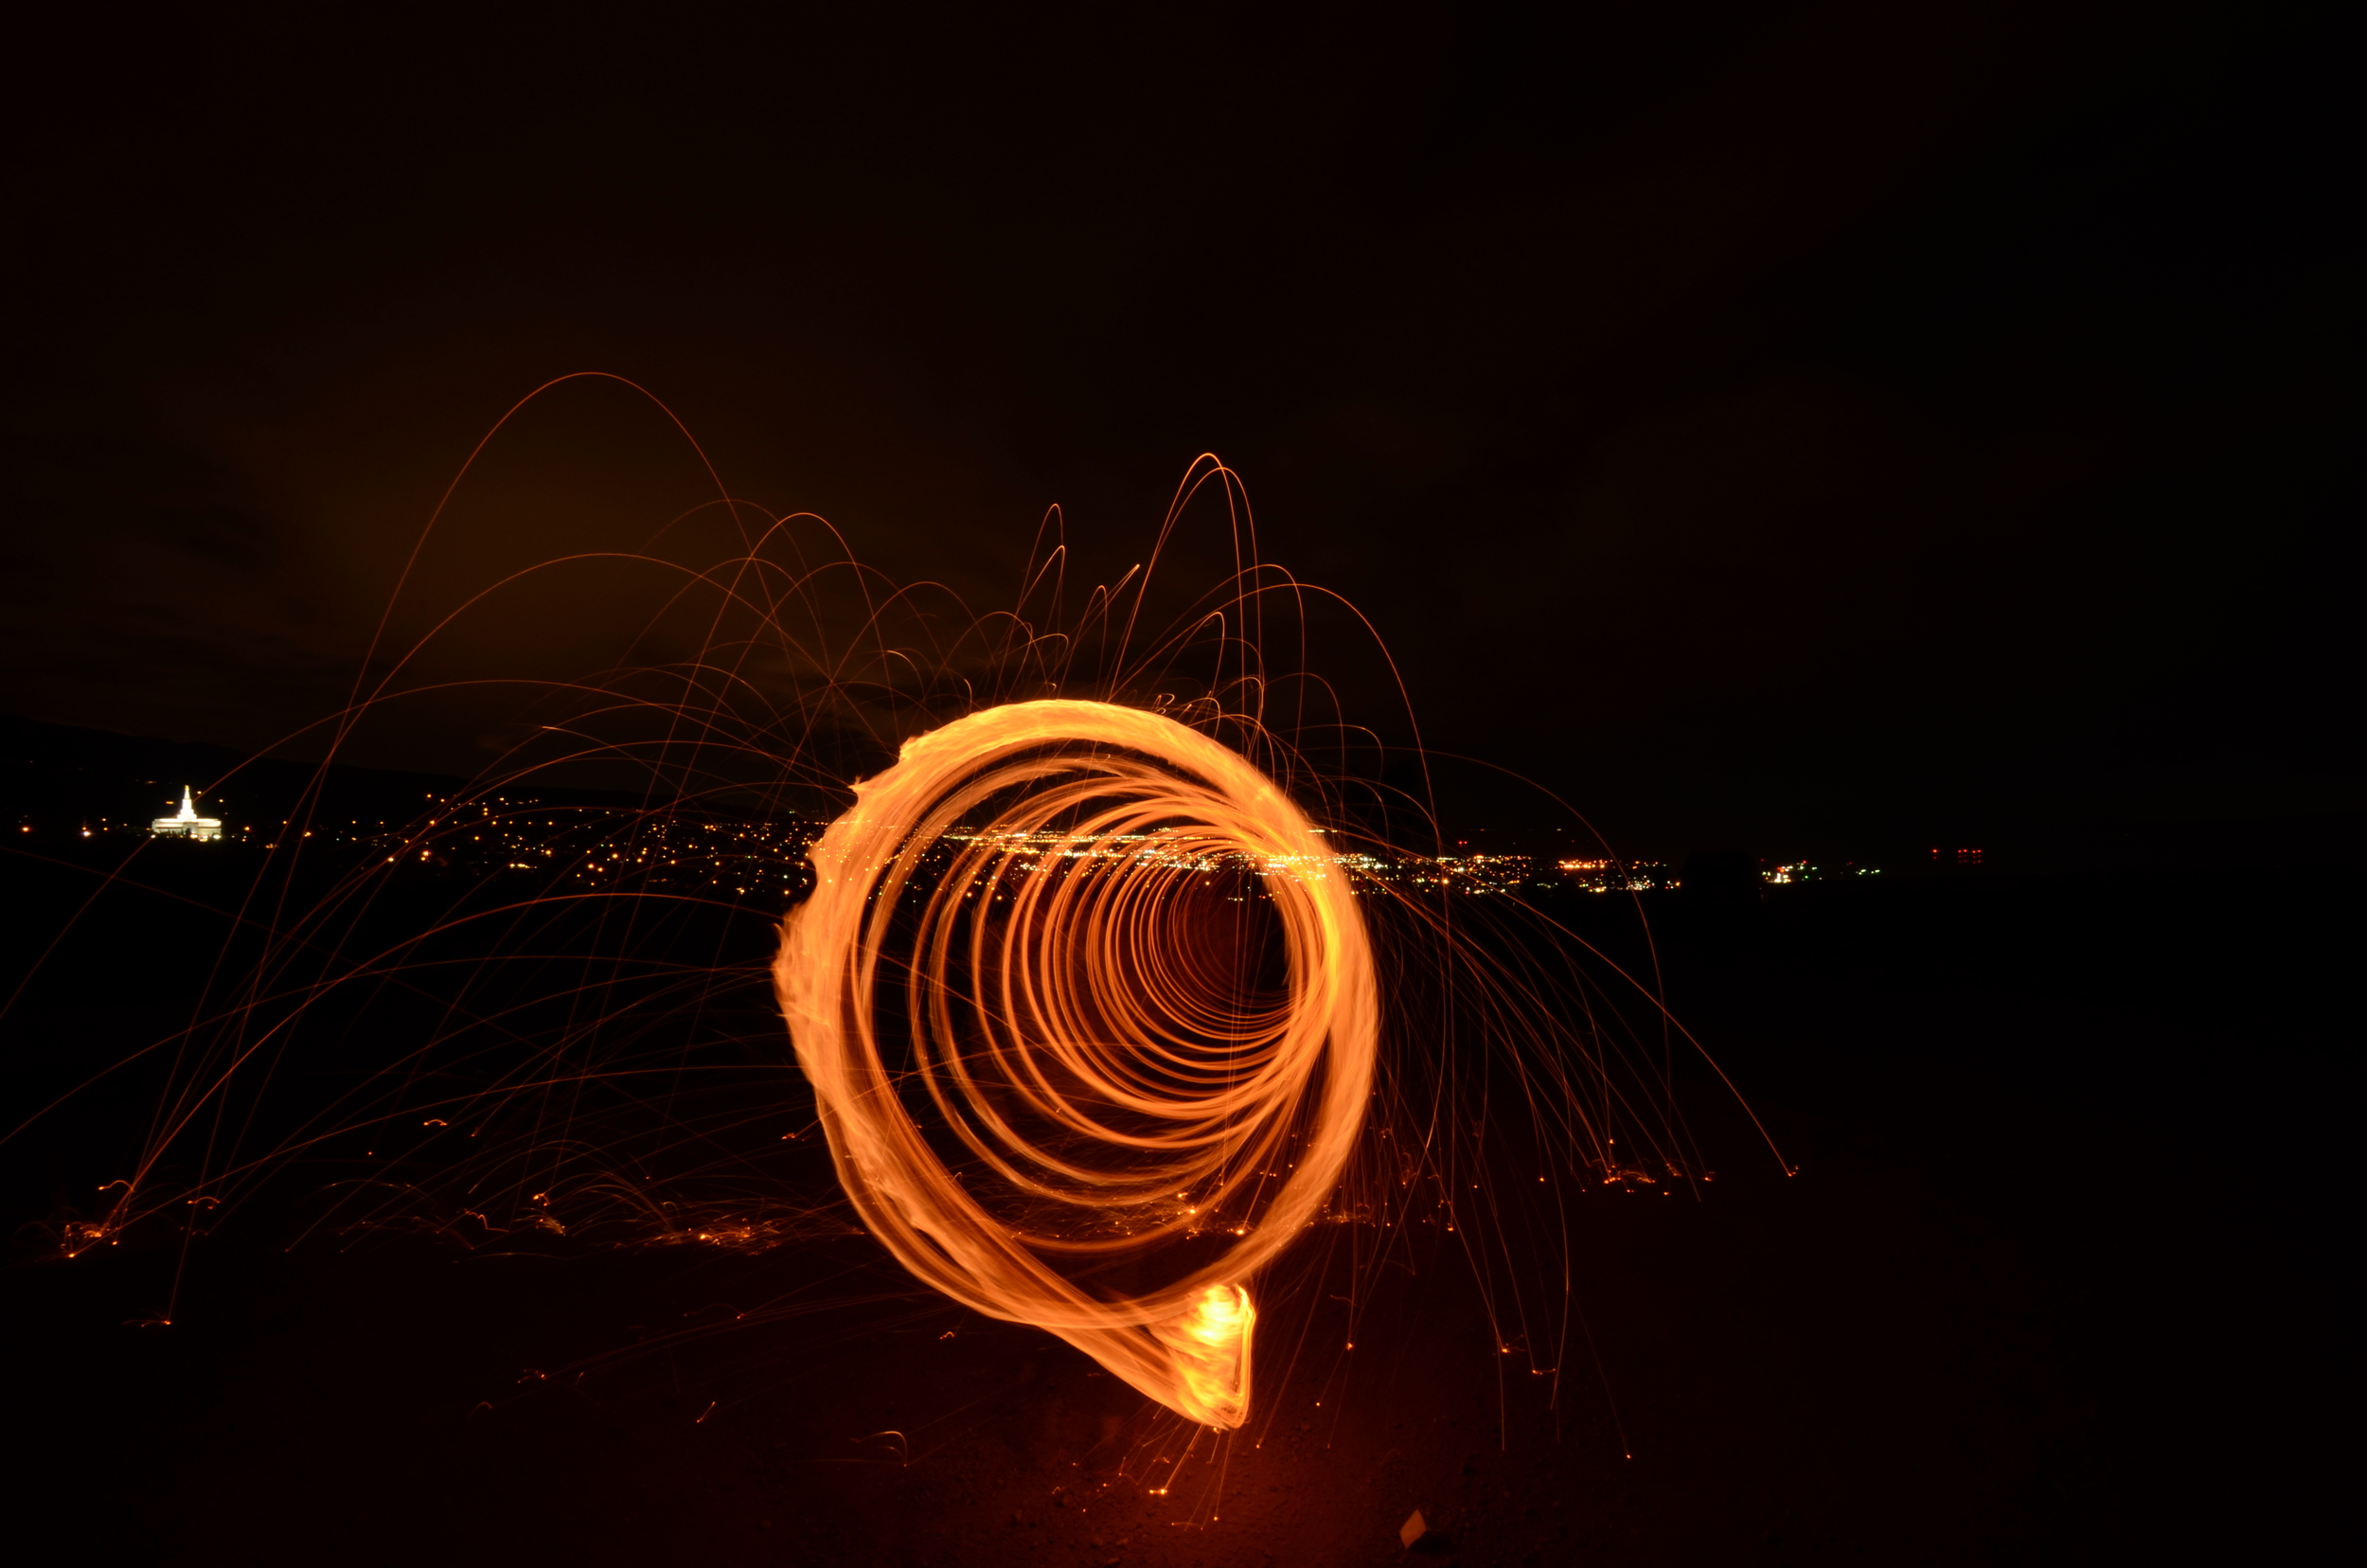 Flaming steel wool, I based the shutter speed on how far I wanted to move. 25 seconds